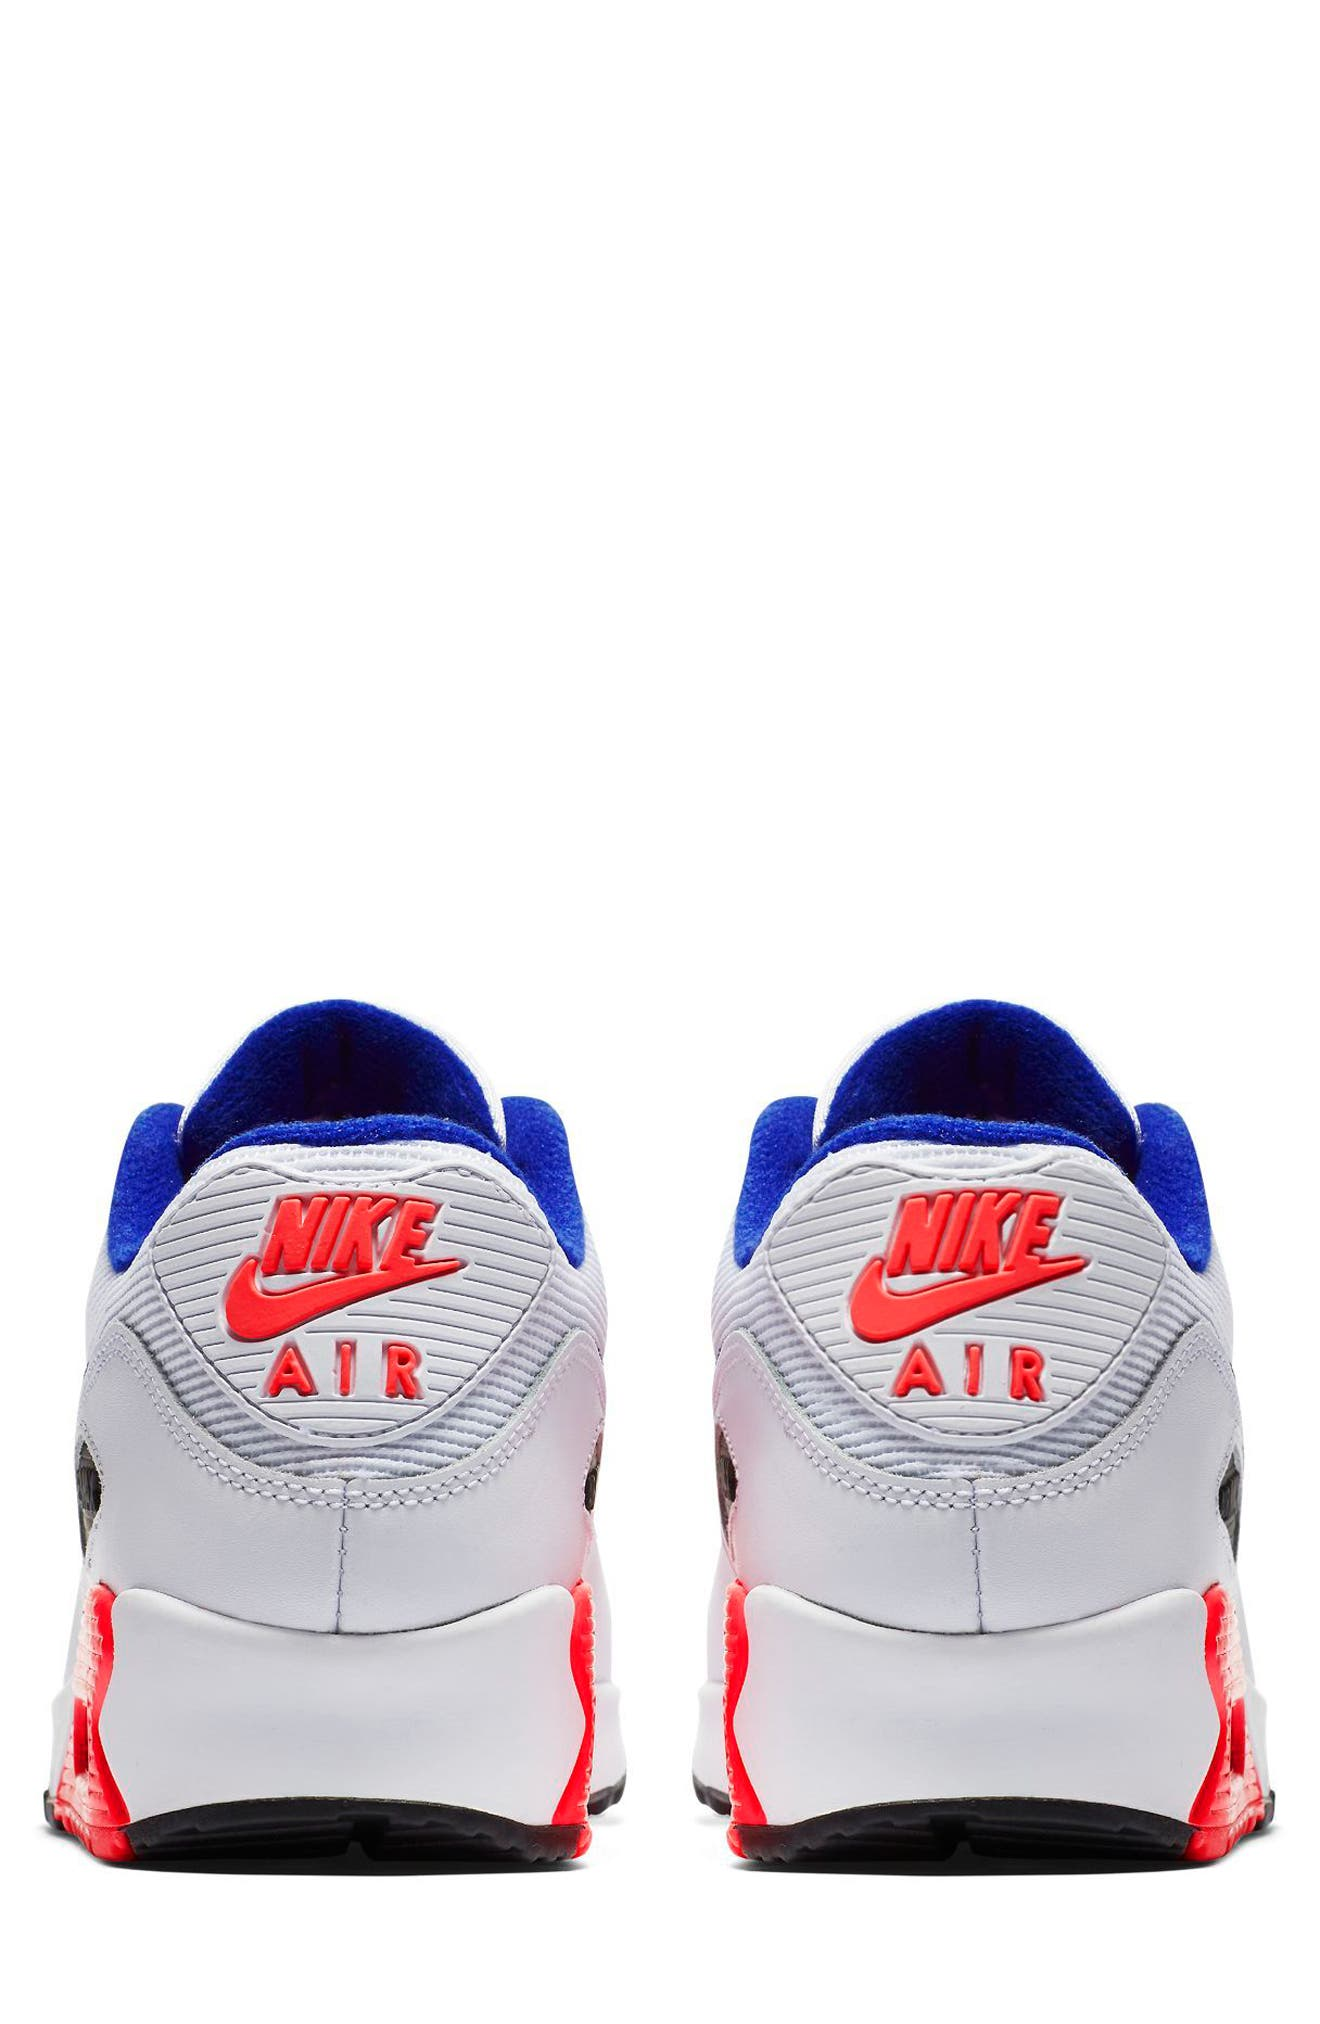 Air Max 90 Essential Sneaker,                             Alternate thumbnail 2, color,                             White/ Ultramarine